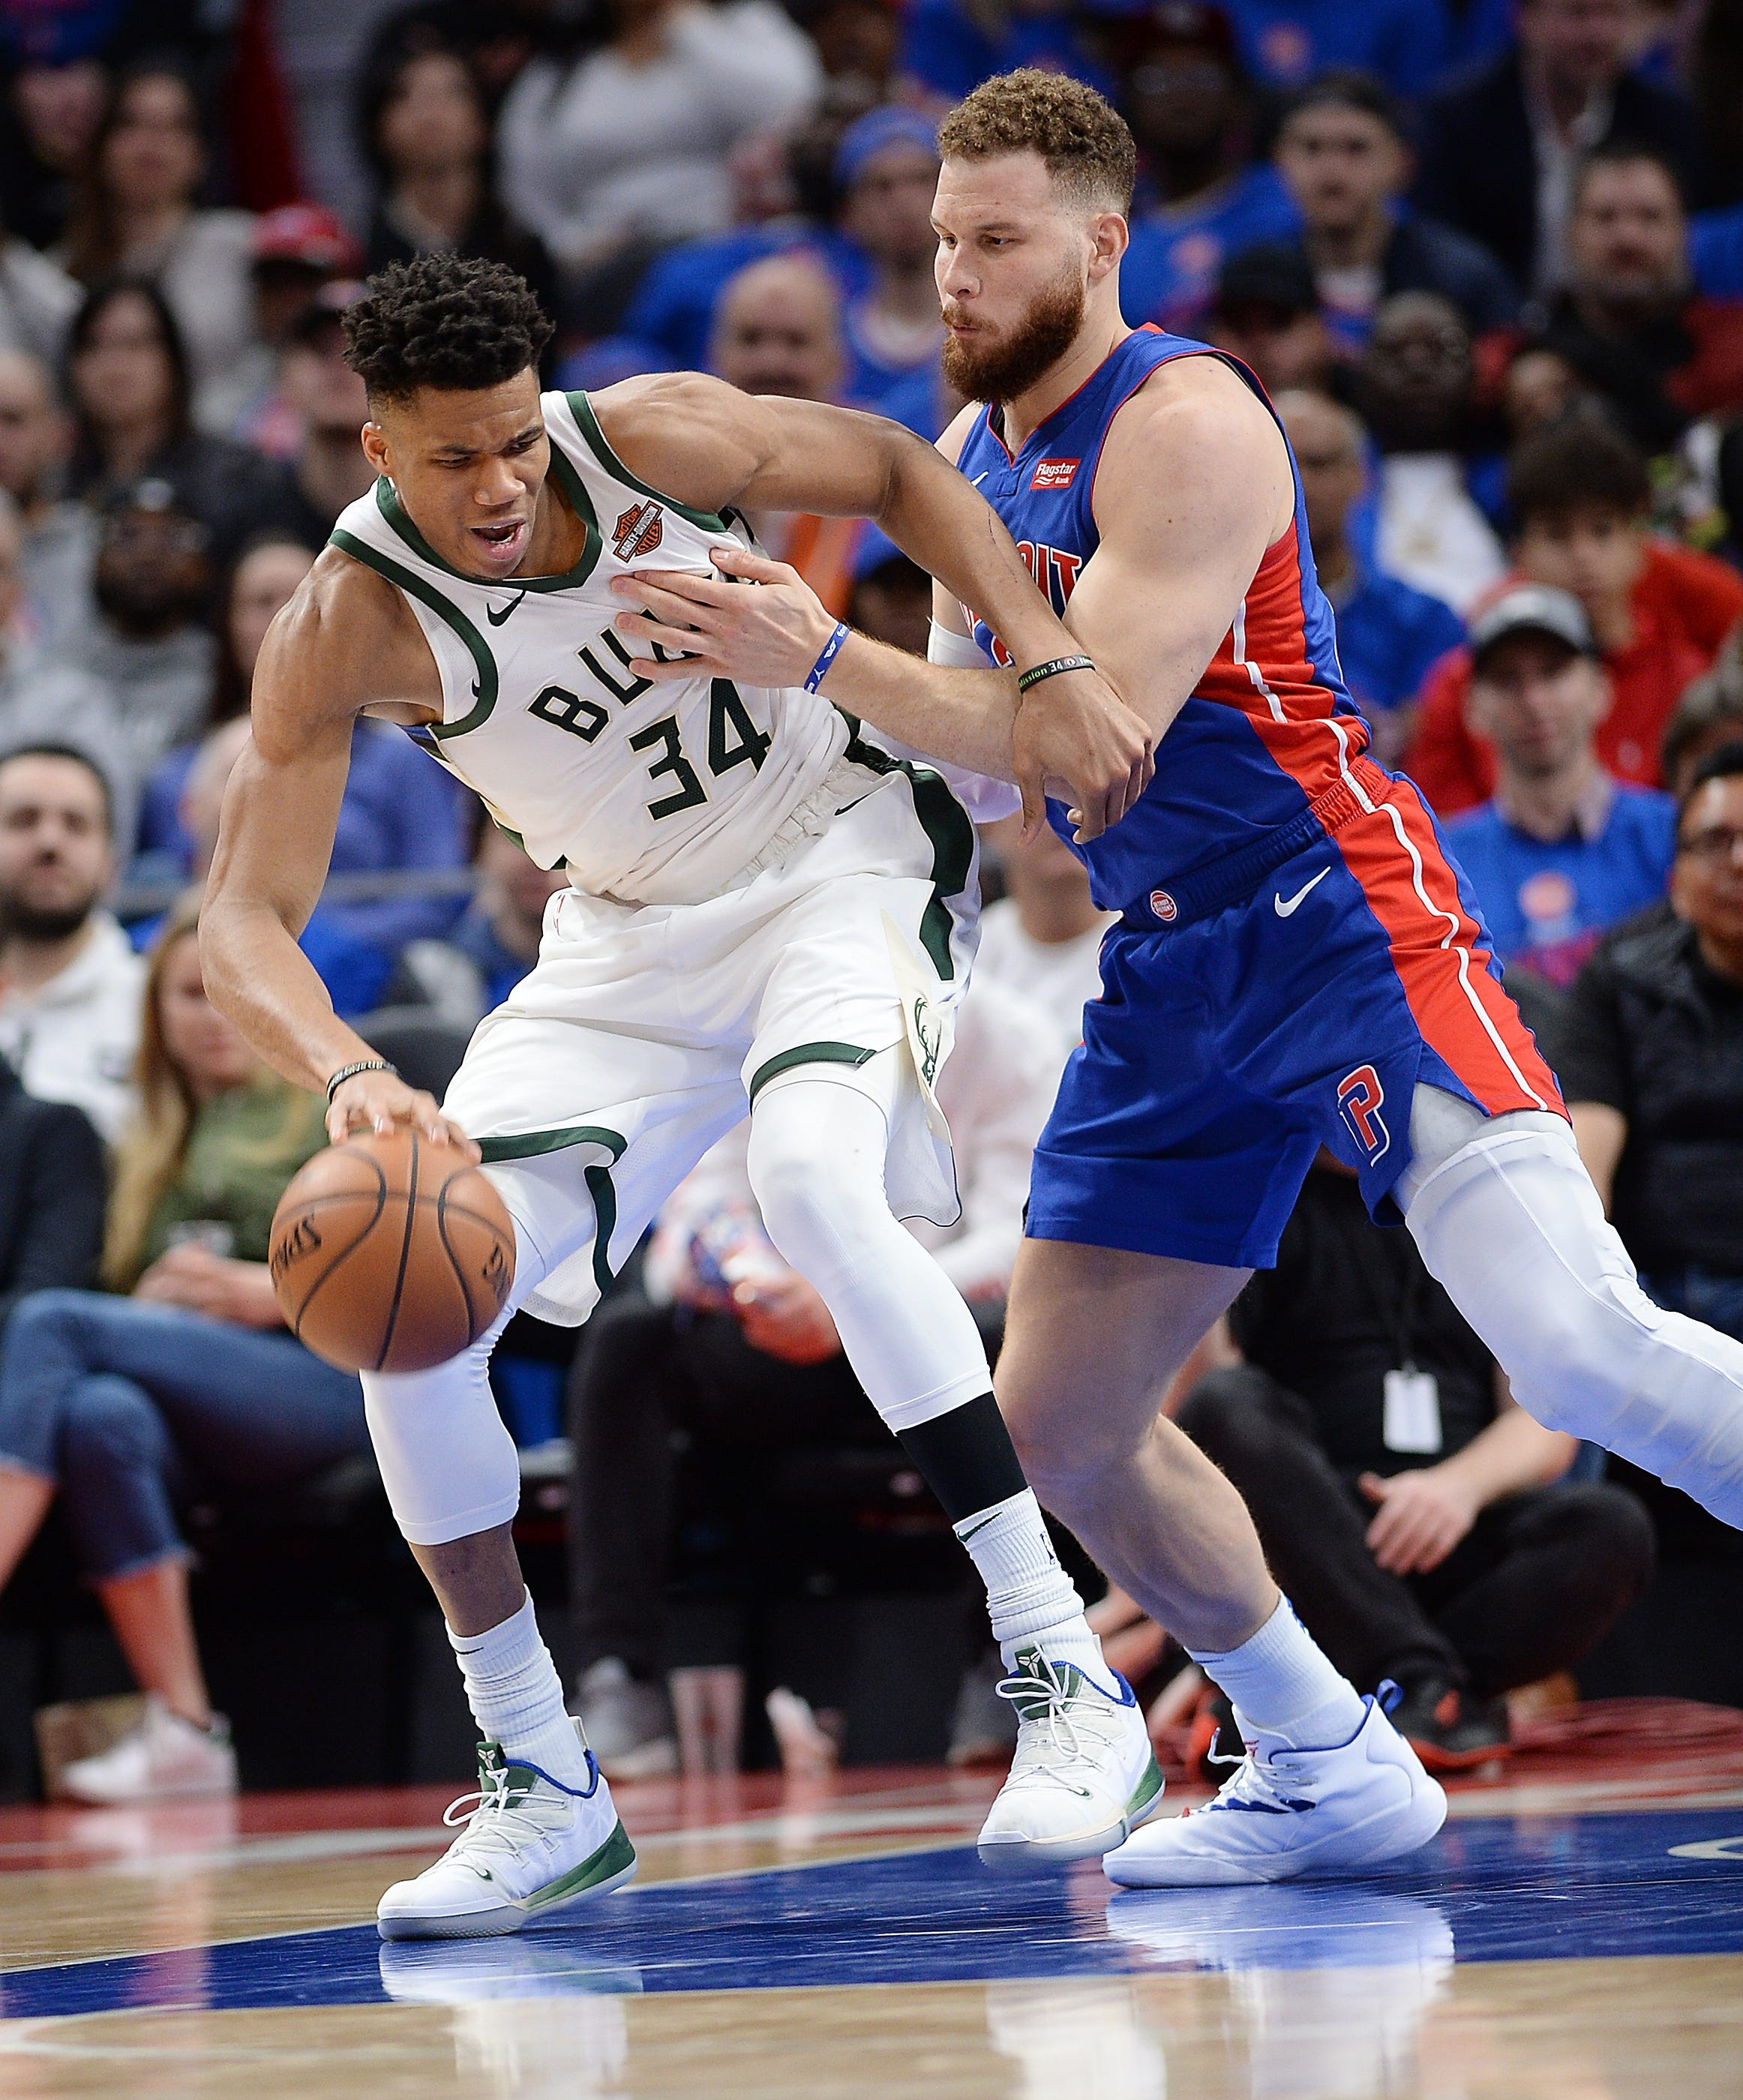 Bucks' Giannis Antetokounmpo drives around Pistons' Blake Griffin in the fourth quarter. Griffin finished with 27 points, but Detroit lost 119-103 to fall behind Milwaukee 3-0 in the first-round series.